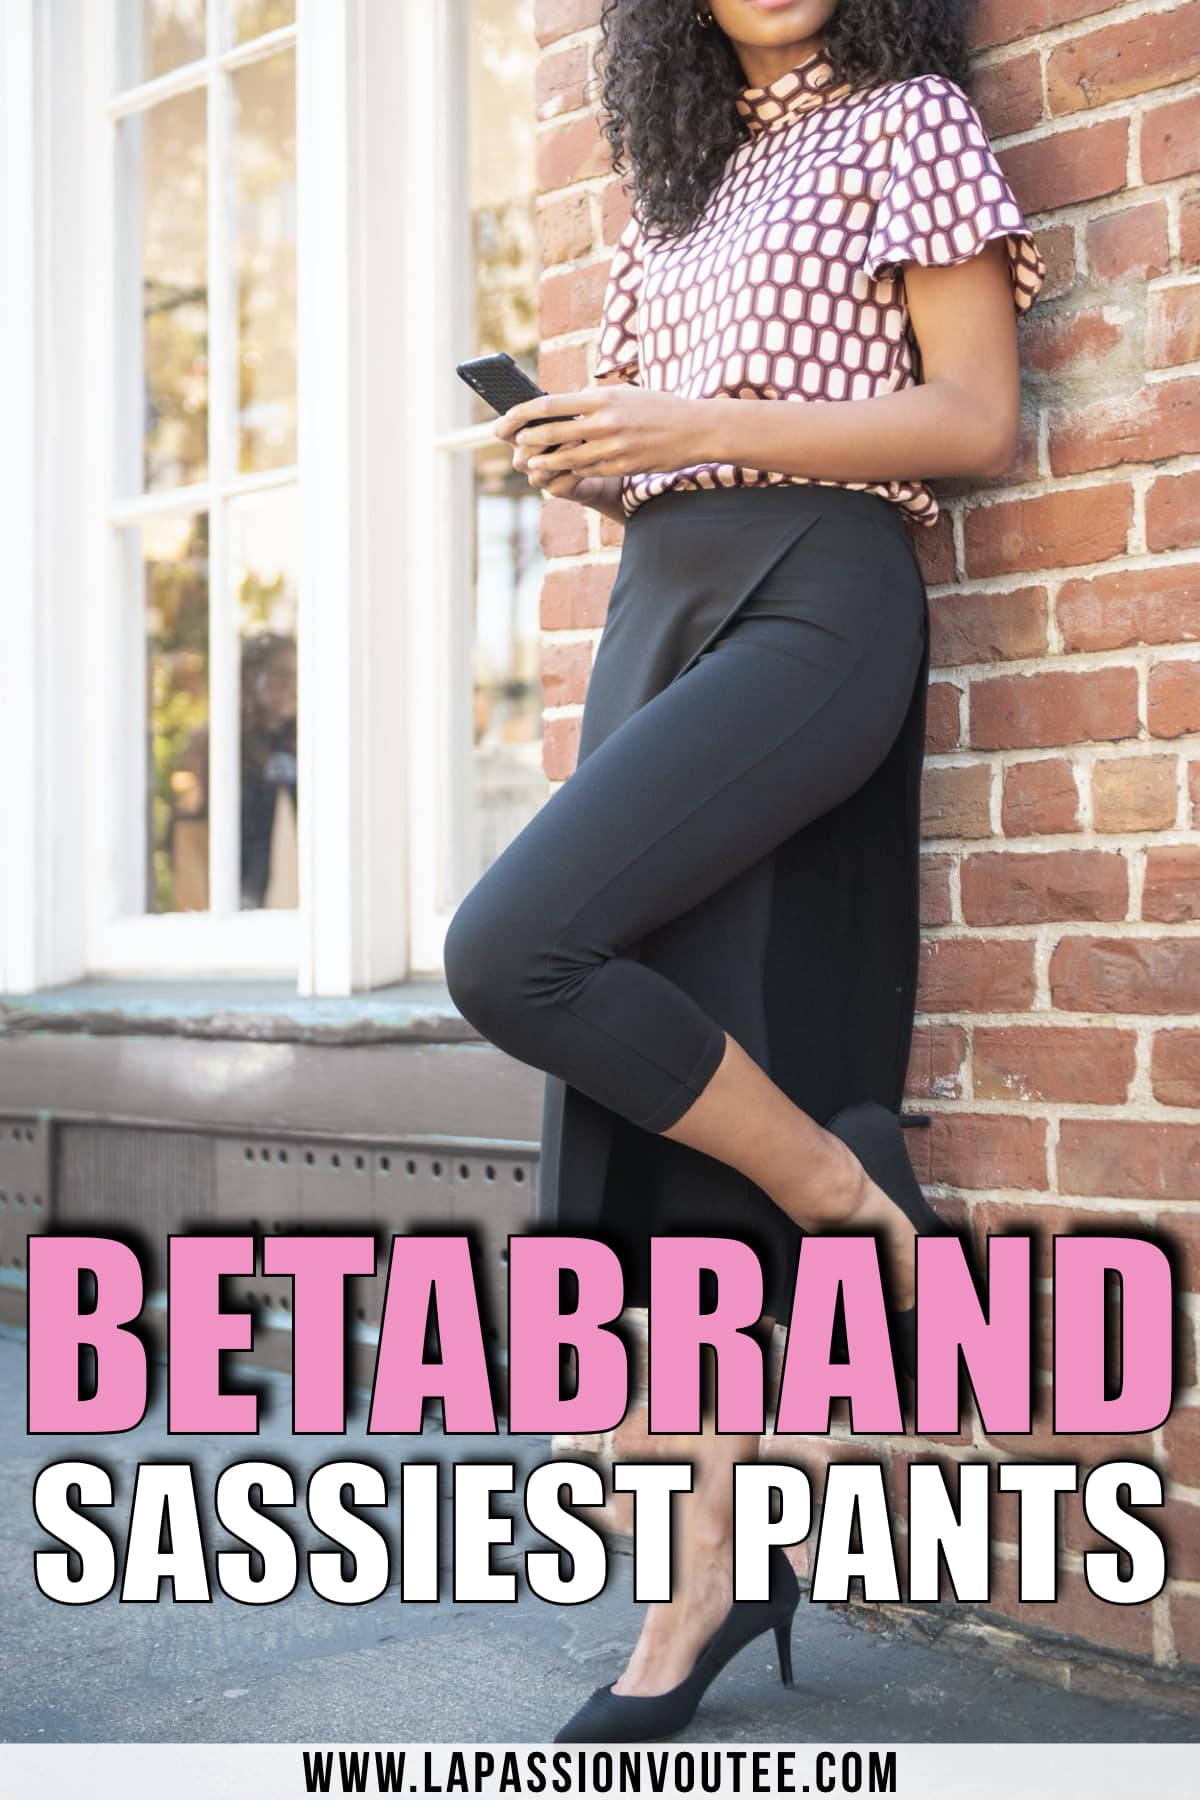 Thinking about getting these Betabrand pants? I spent my money on this bestselling Betabrand pants. Here's my honest review about this dress pants.